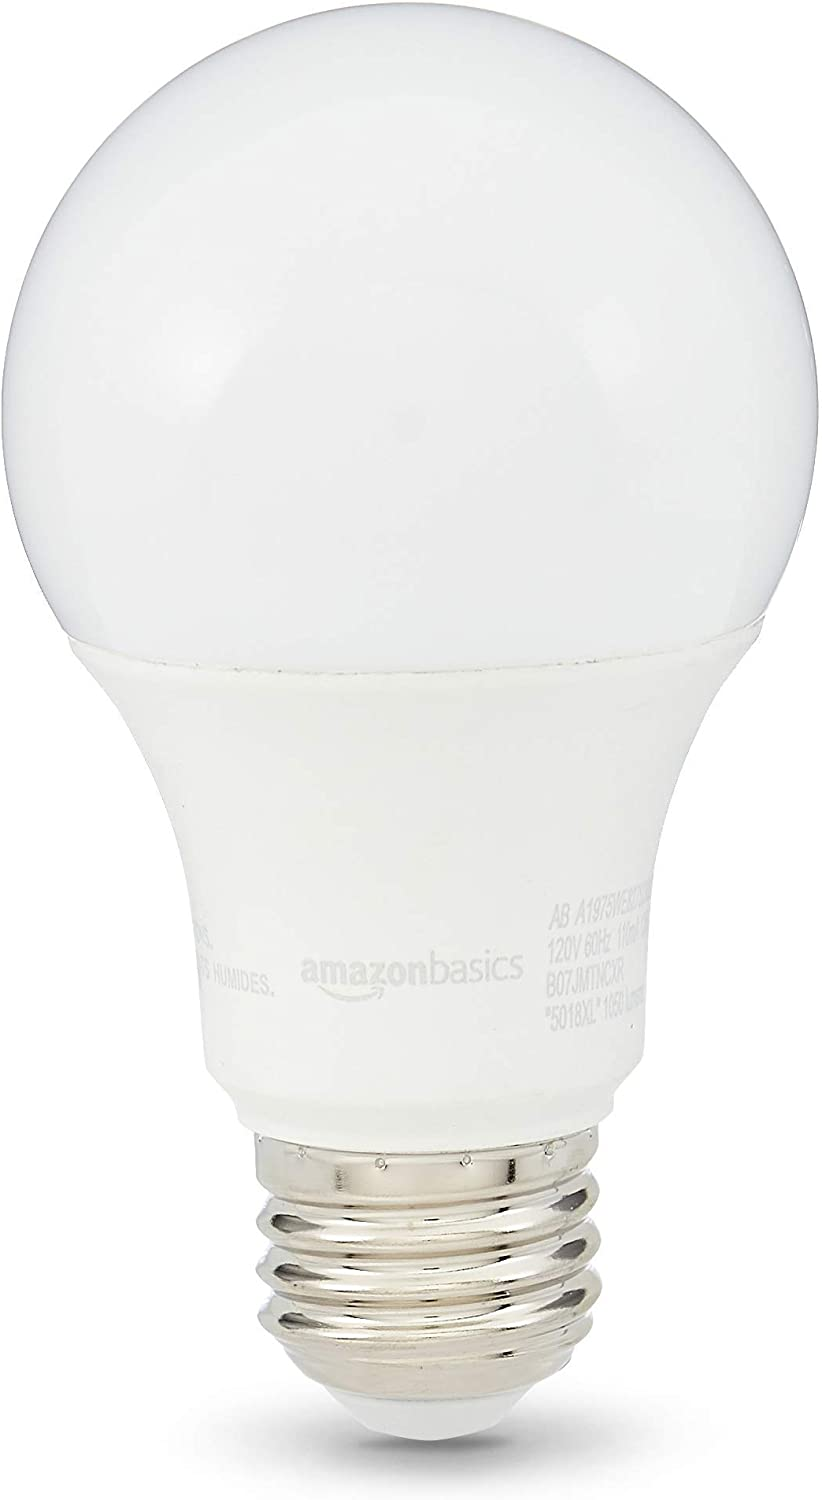 AmazonBasics 75W Equivalent, Soft White, Dimmable, 10,000 Hour Lifetime, A19 LED Light Bulb | 6-Pack (Renewed)